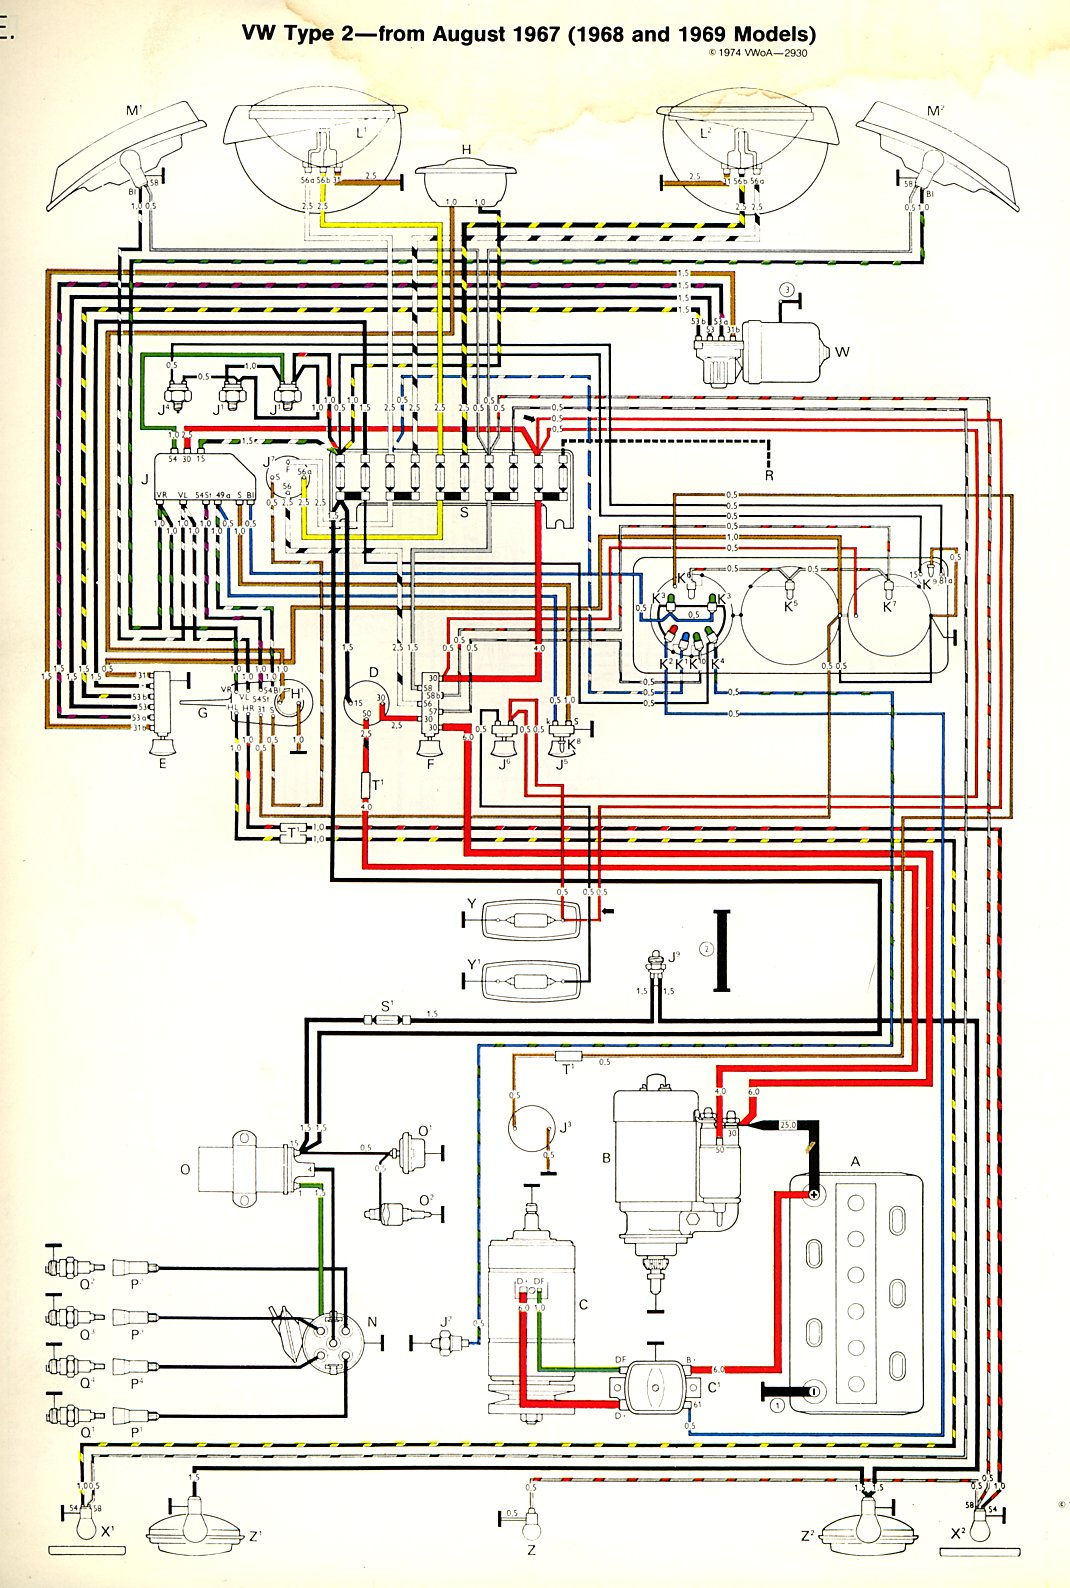 Type 2 Wiring Diagrams 1967 Pontiac Firebird Engine Diagram Free Picture